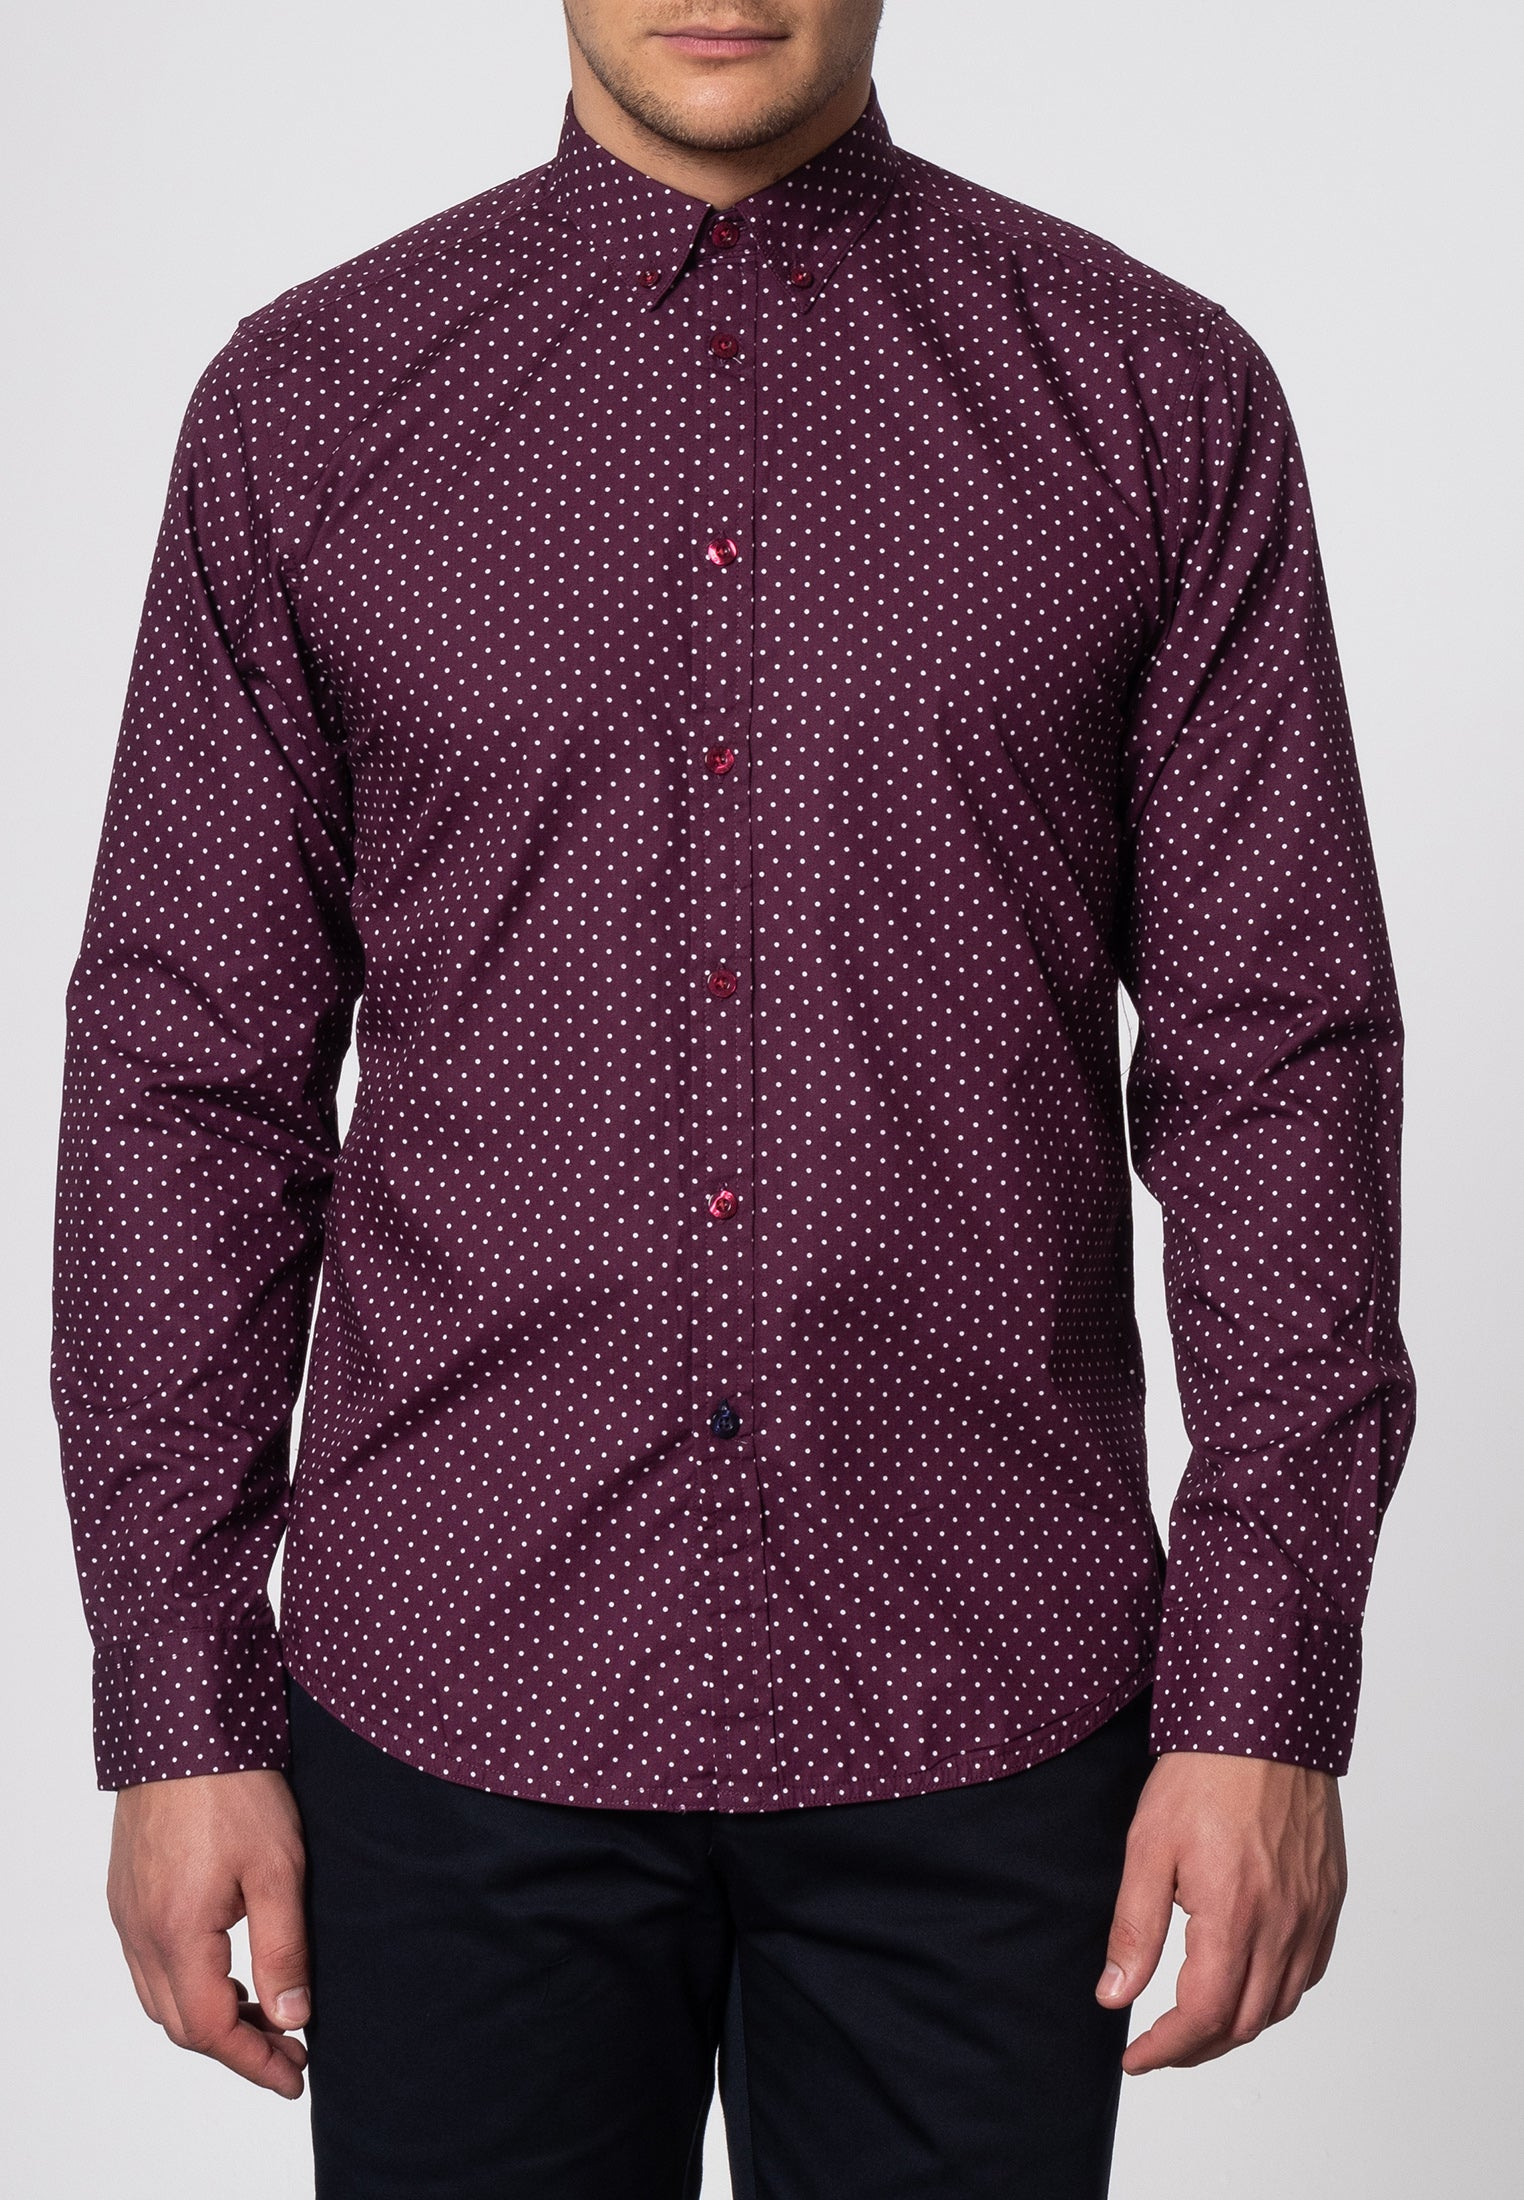 Siegel Polka Dot Shirt - Merc London